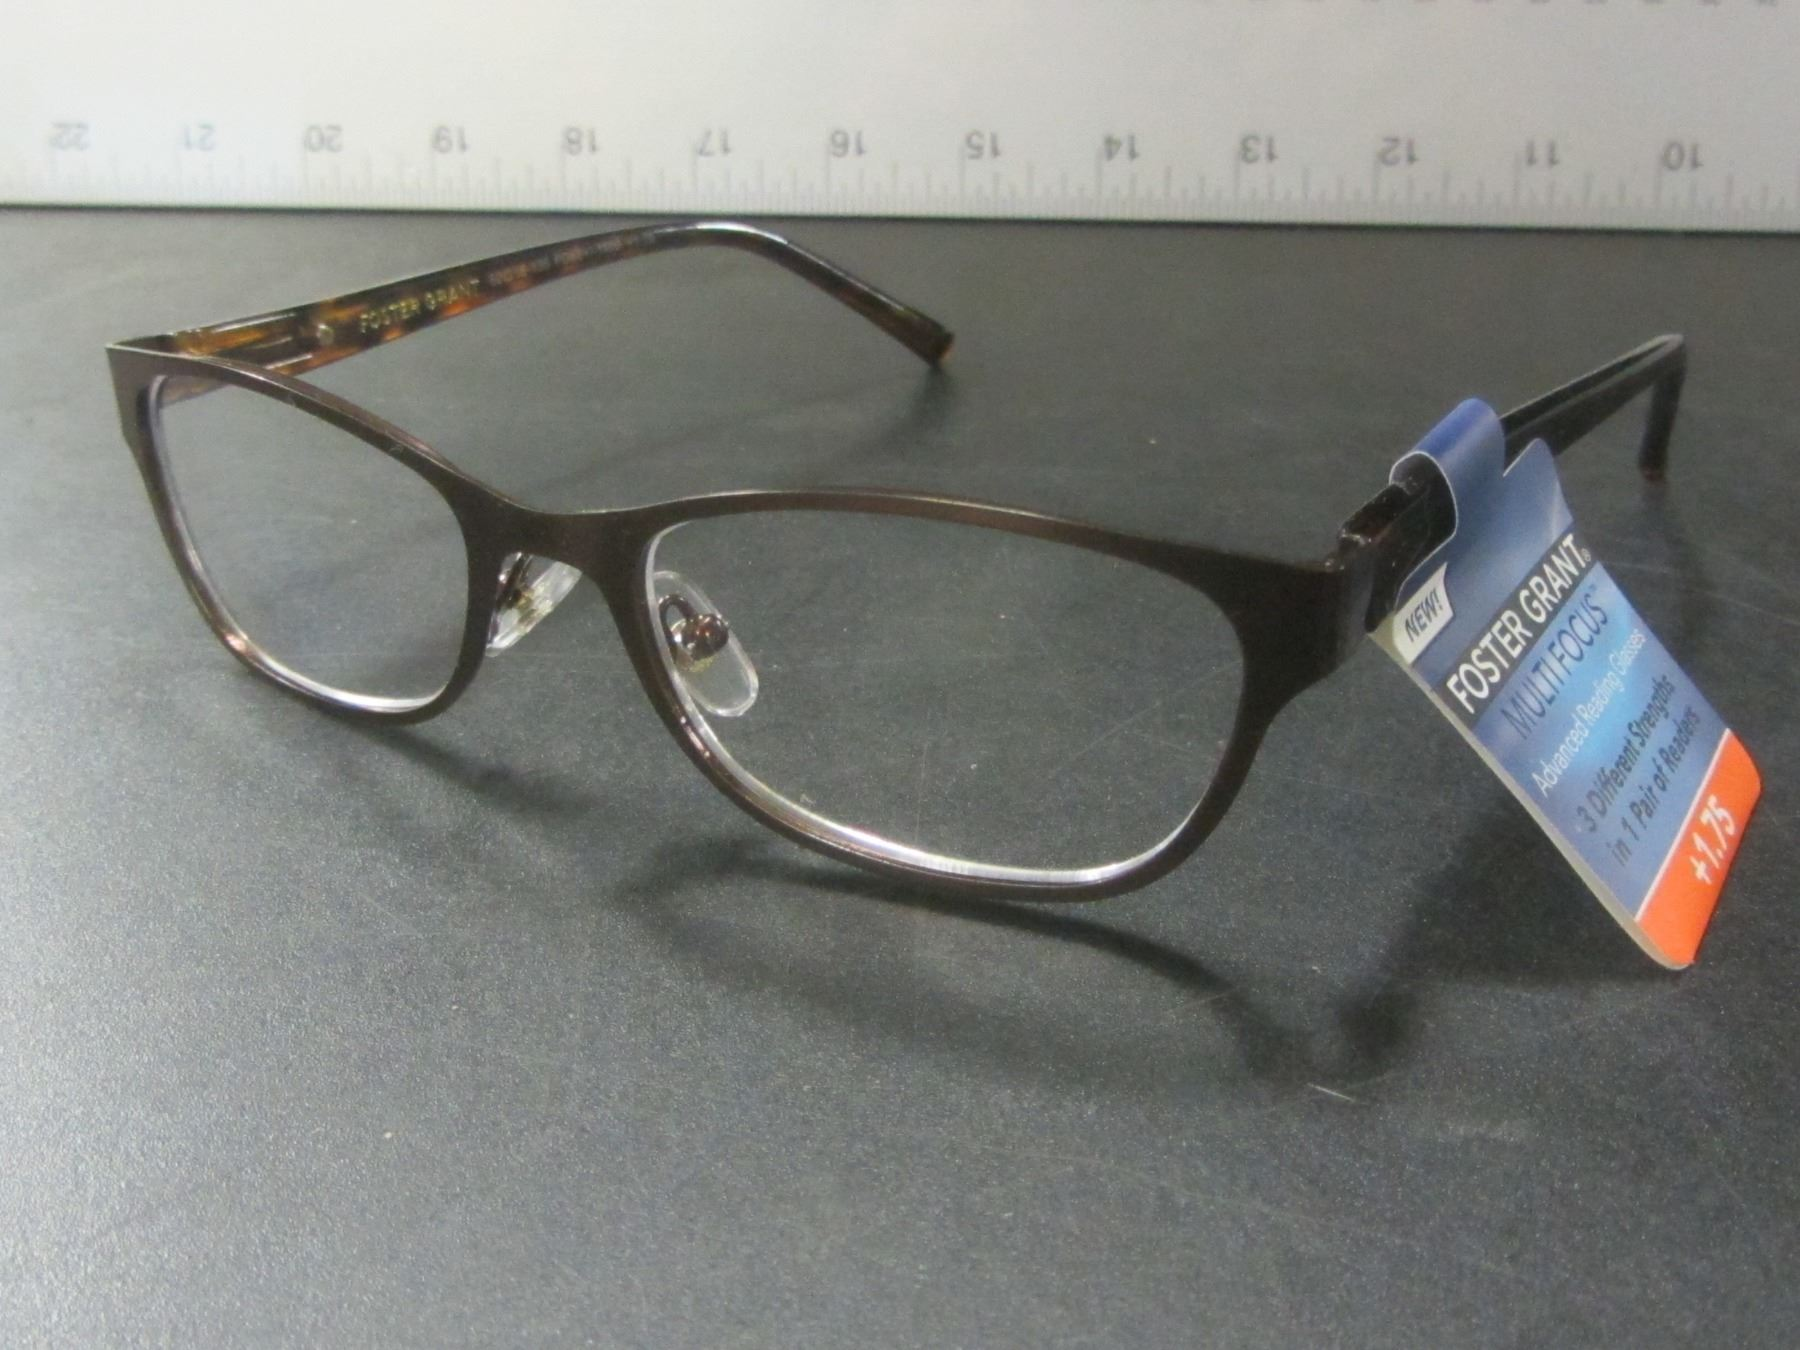 1bec624eaf4 Image 1   New Foster Grant + 1.75 multi focus advanced reading glasses    35.00 tags